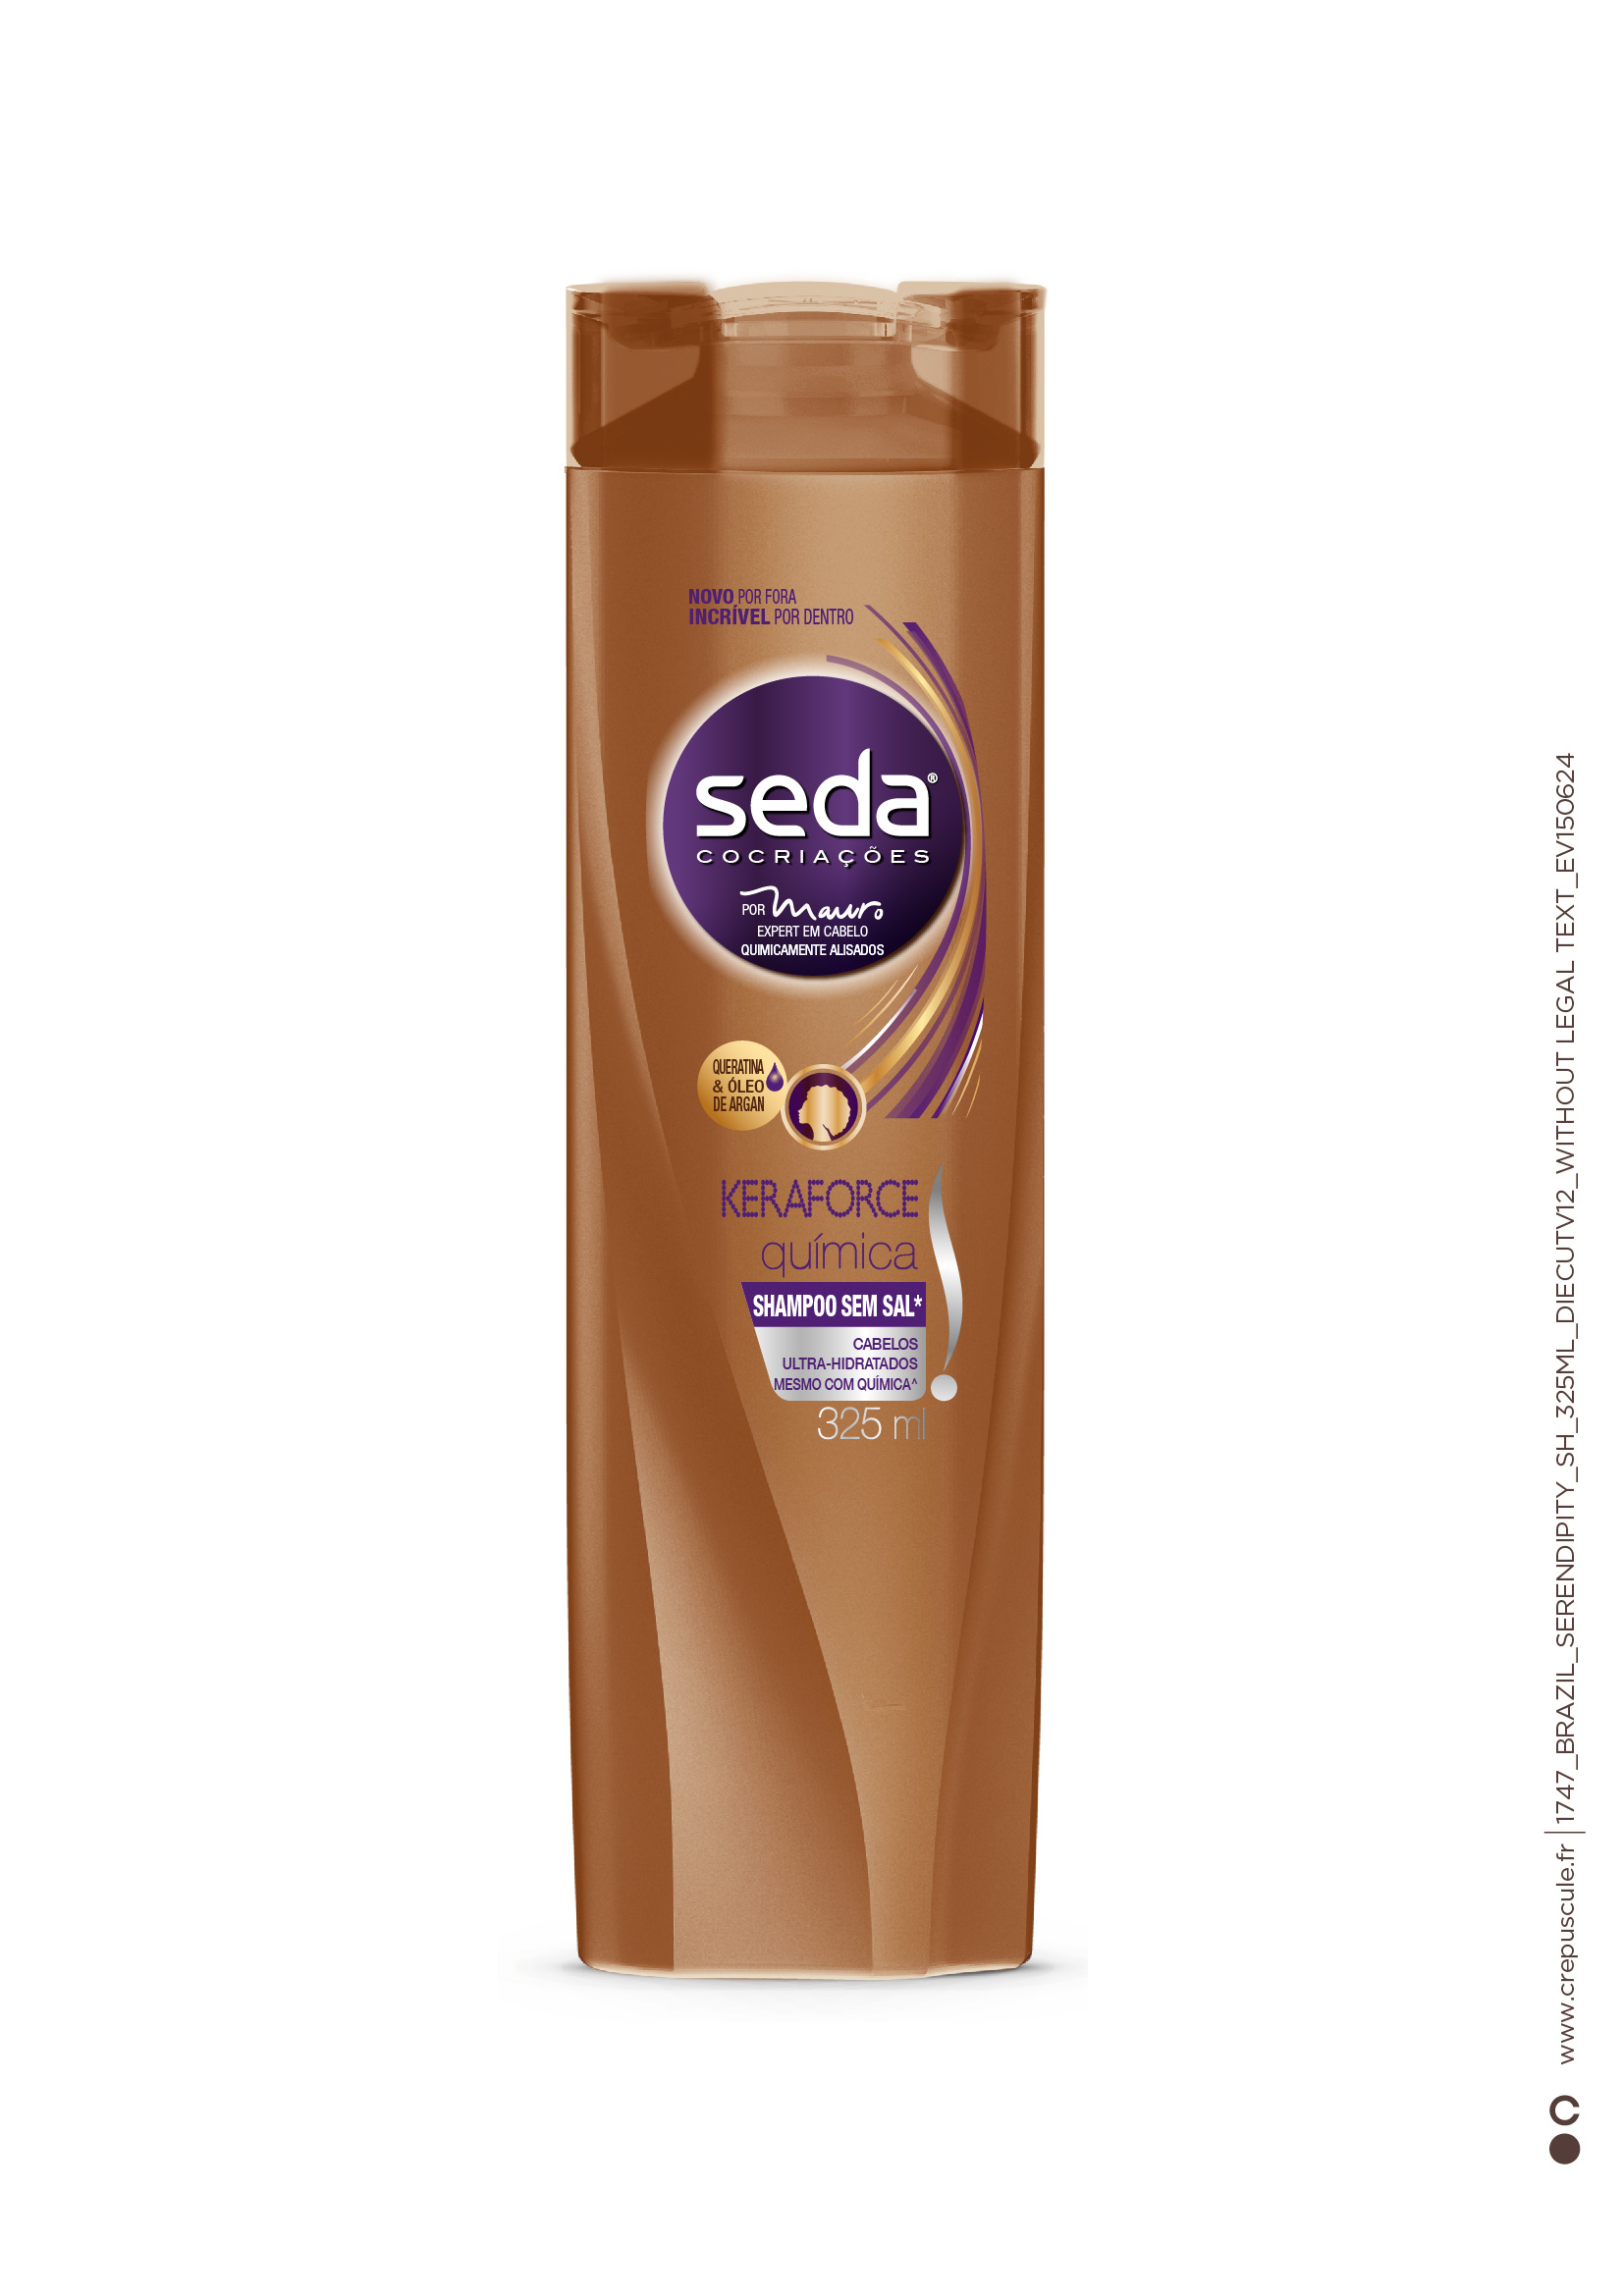 7891150037496 - SHAMPOO SEDA KERAFORCE QUÍMICA 325ML